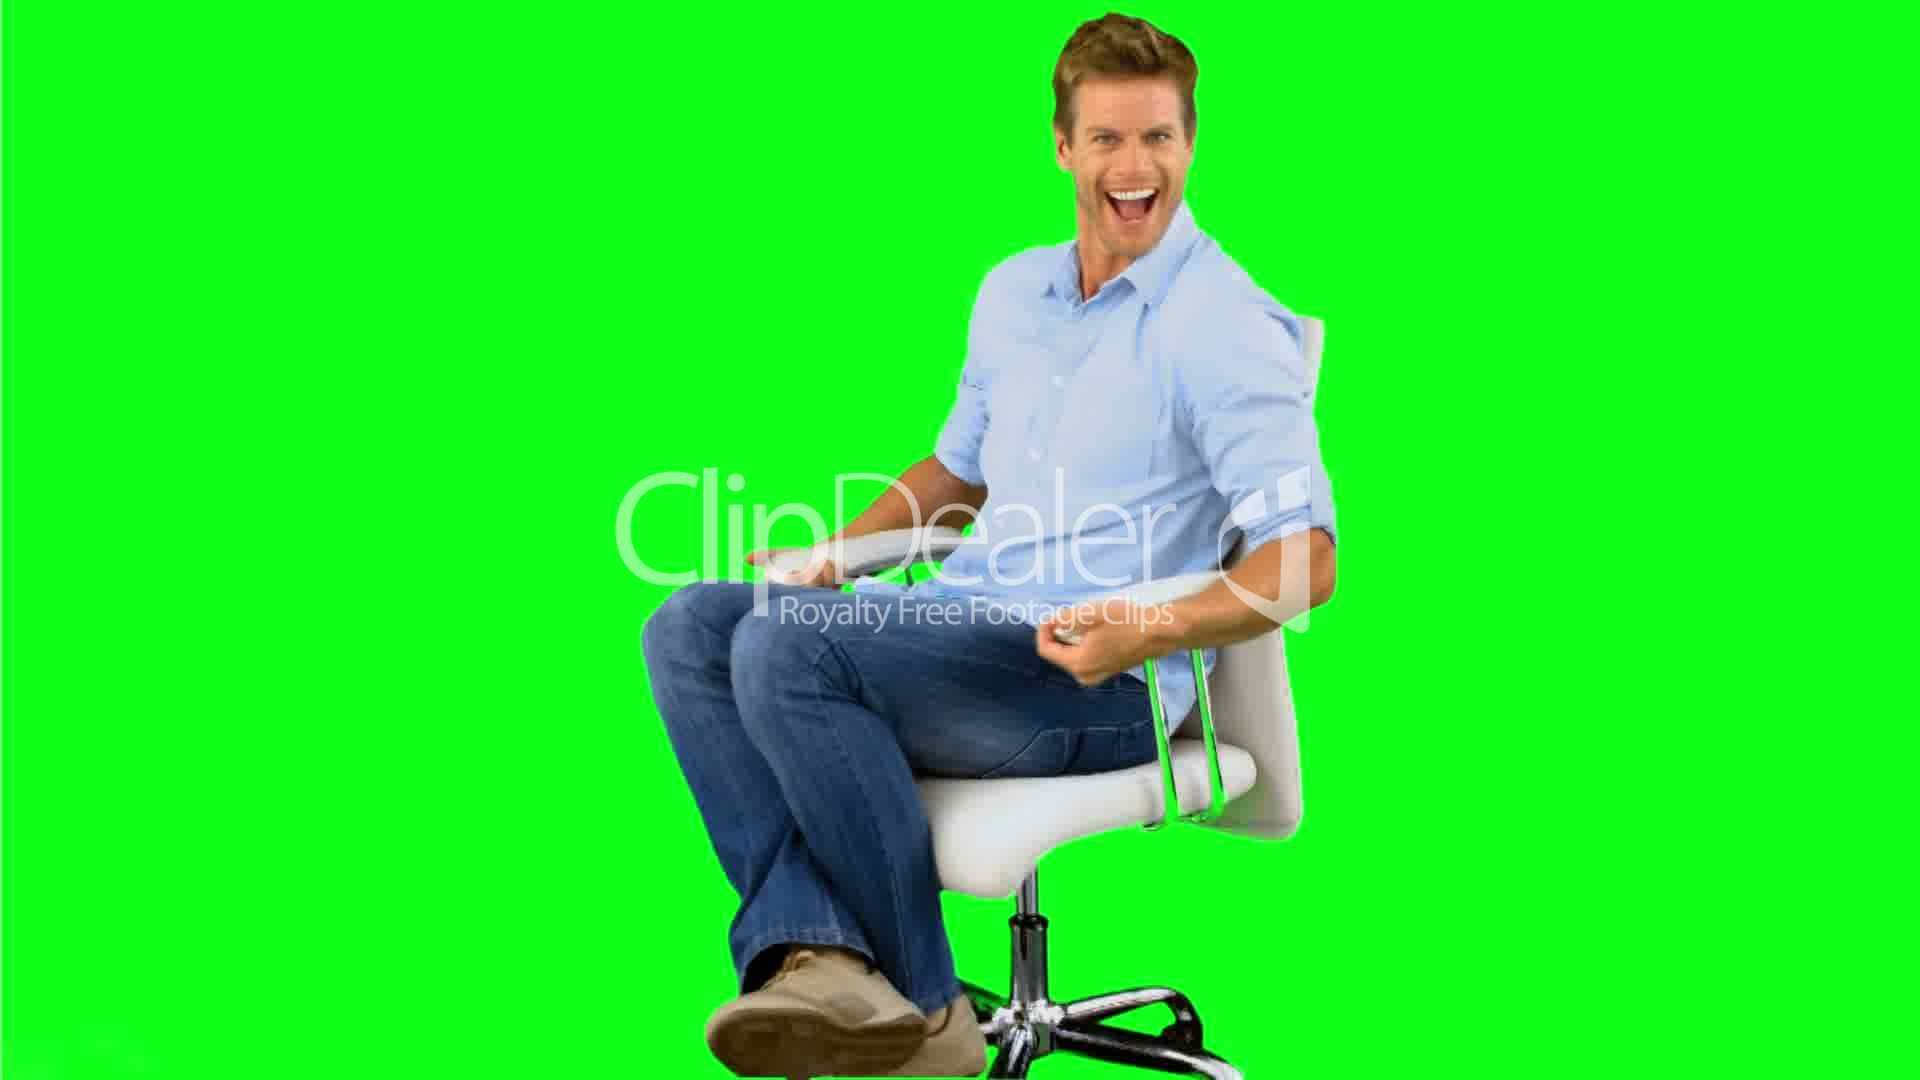 94 Reference Of Swivel Chair Green Screen In 2020 Green Chair Swivel Chair Swivel Rocking Chair